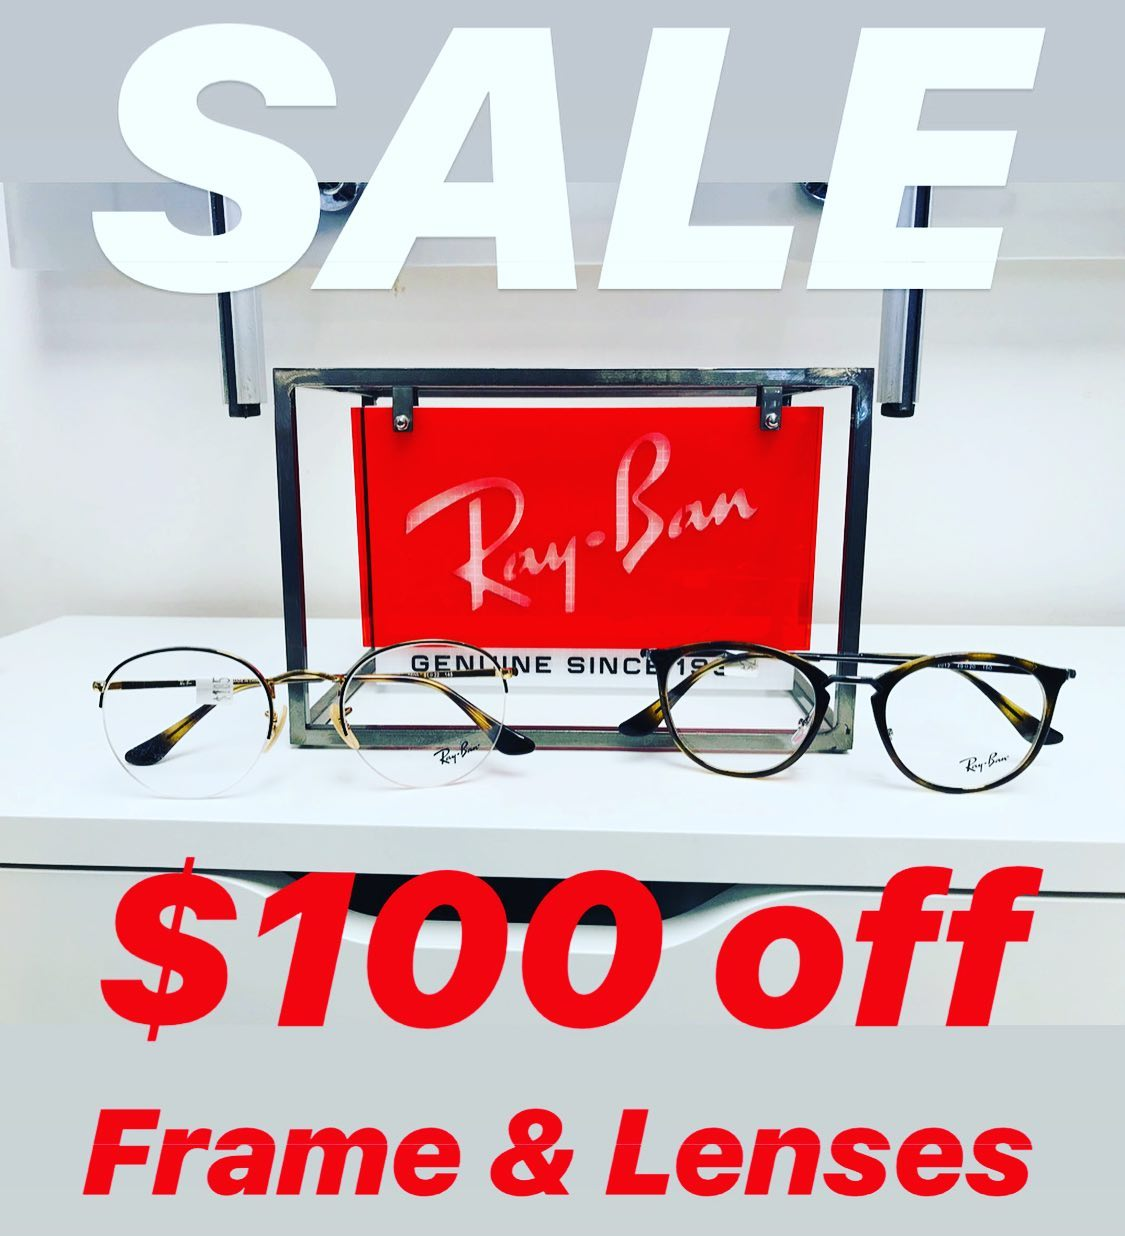 Winter Sale: $100 off when you purchase a new frame and lenses at both our locations. Sale ends on January 31st 2020. #glasses #sale #guelph #eyeexam #sunglasses